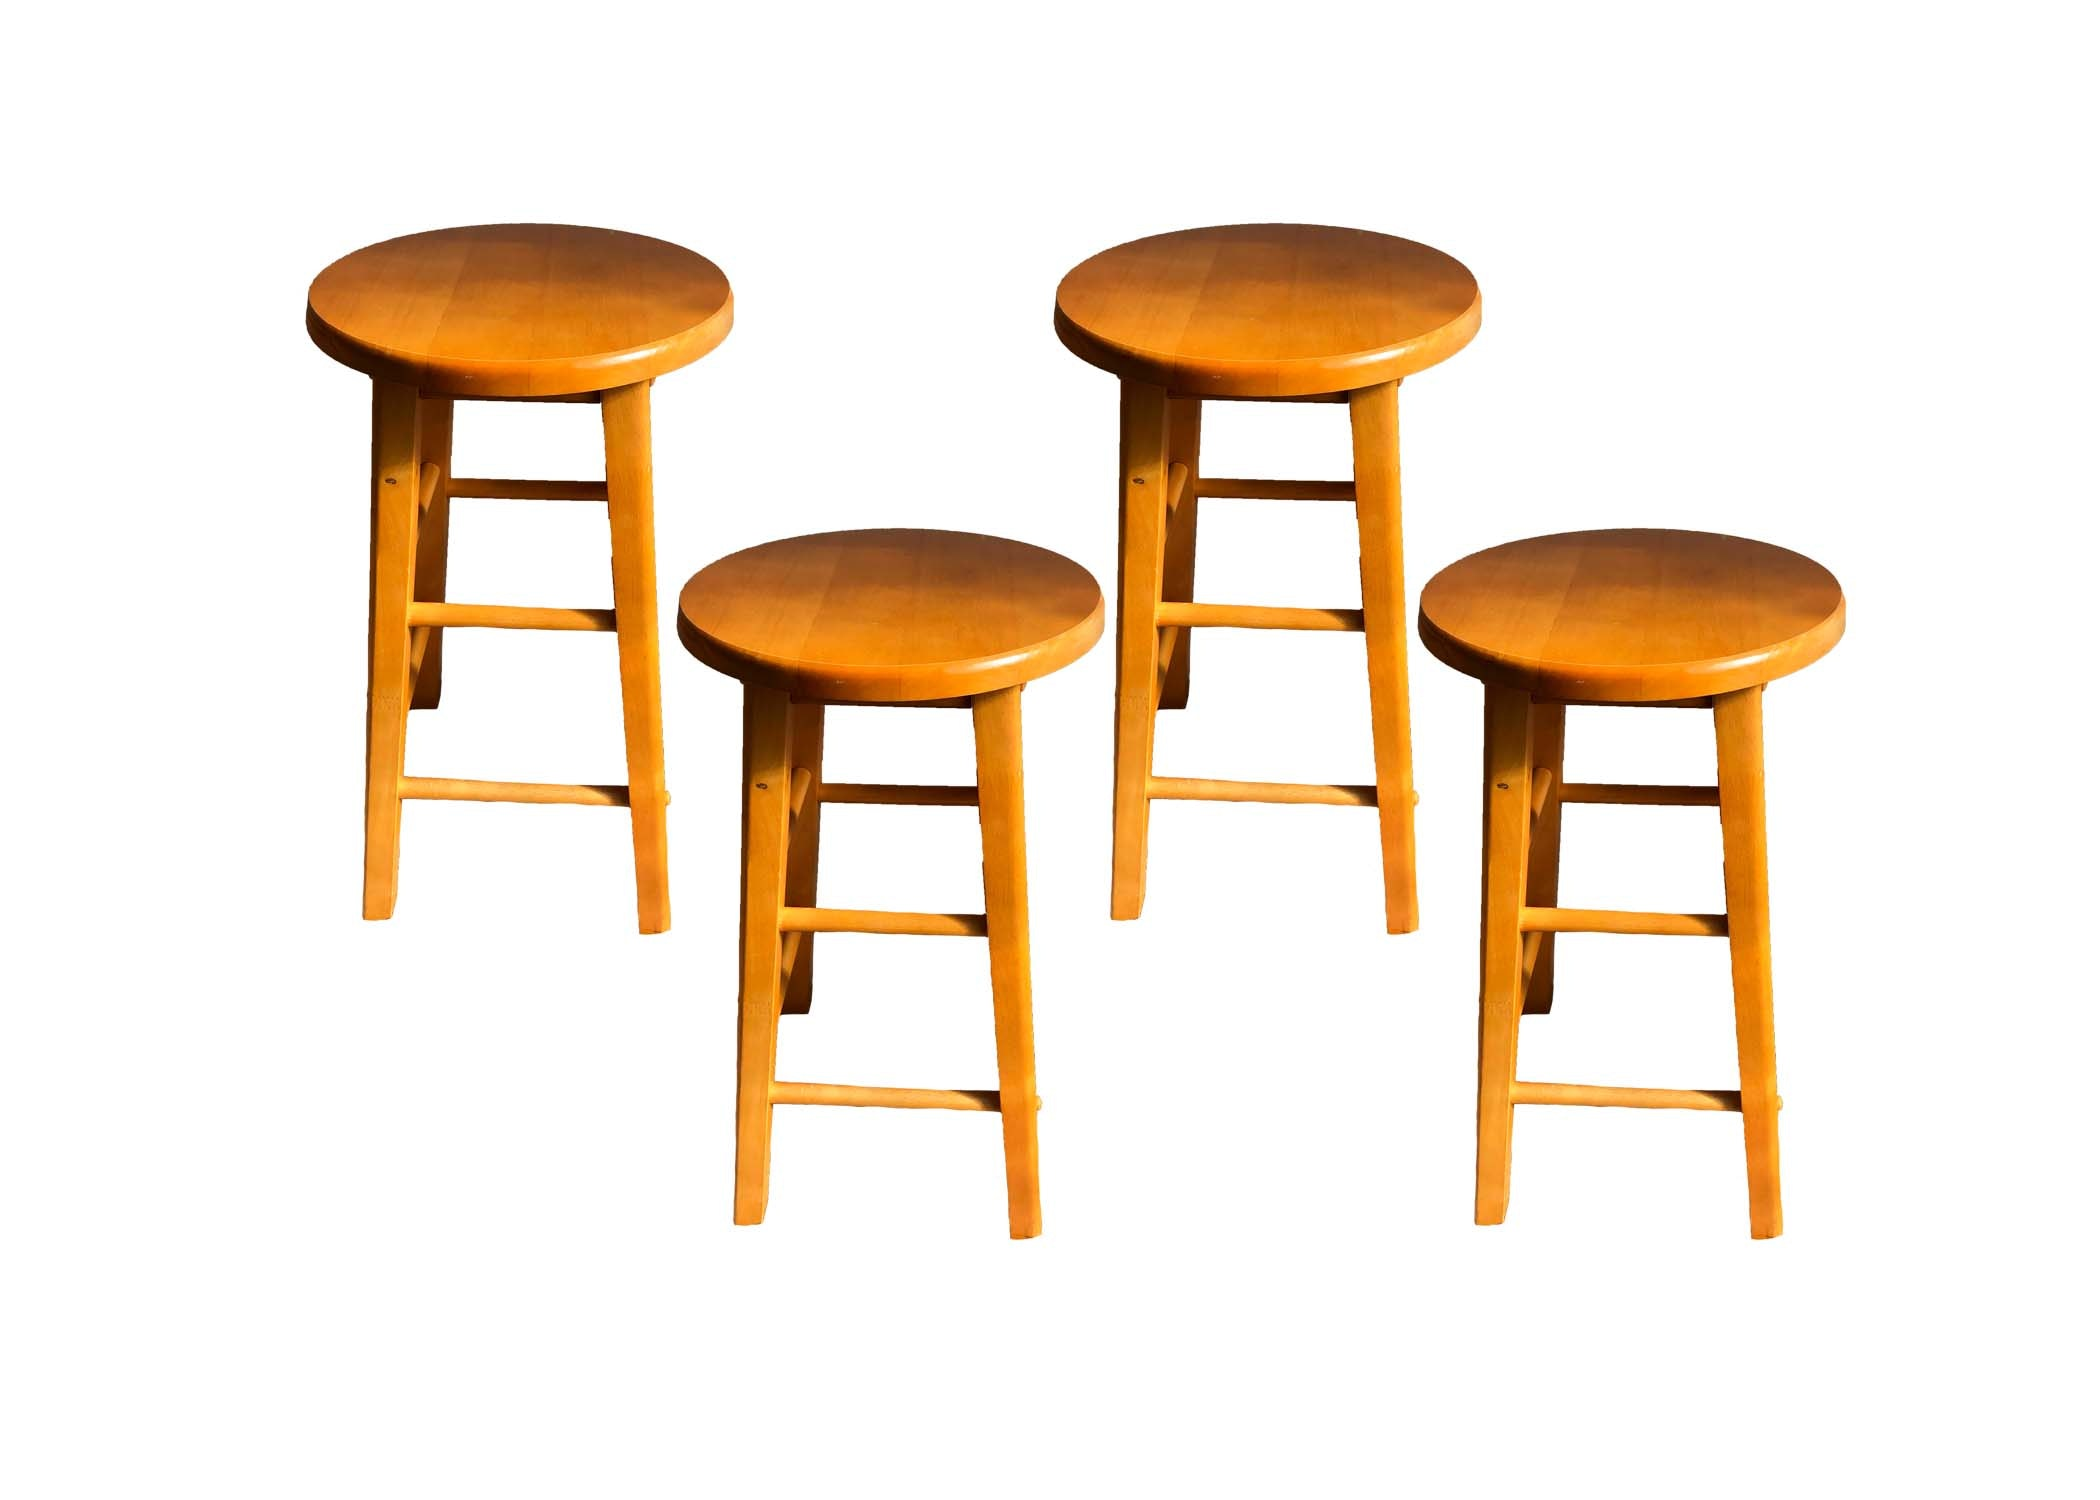 Four Counter Stools